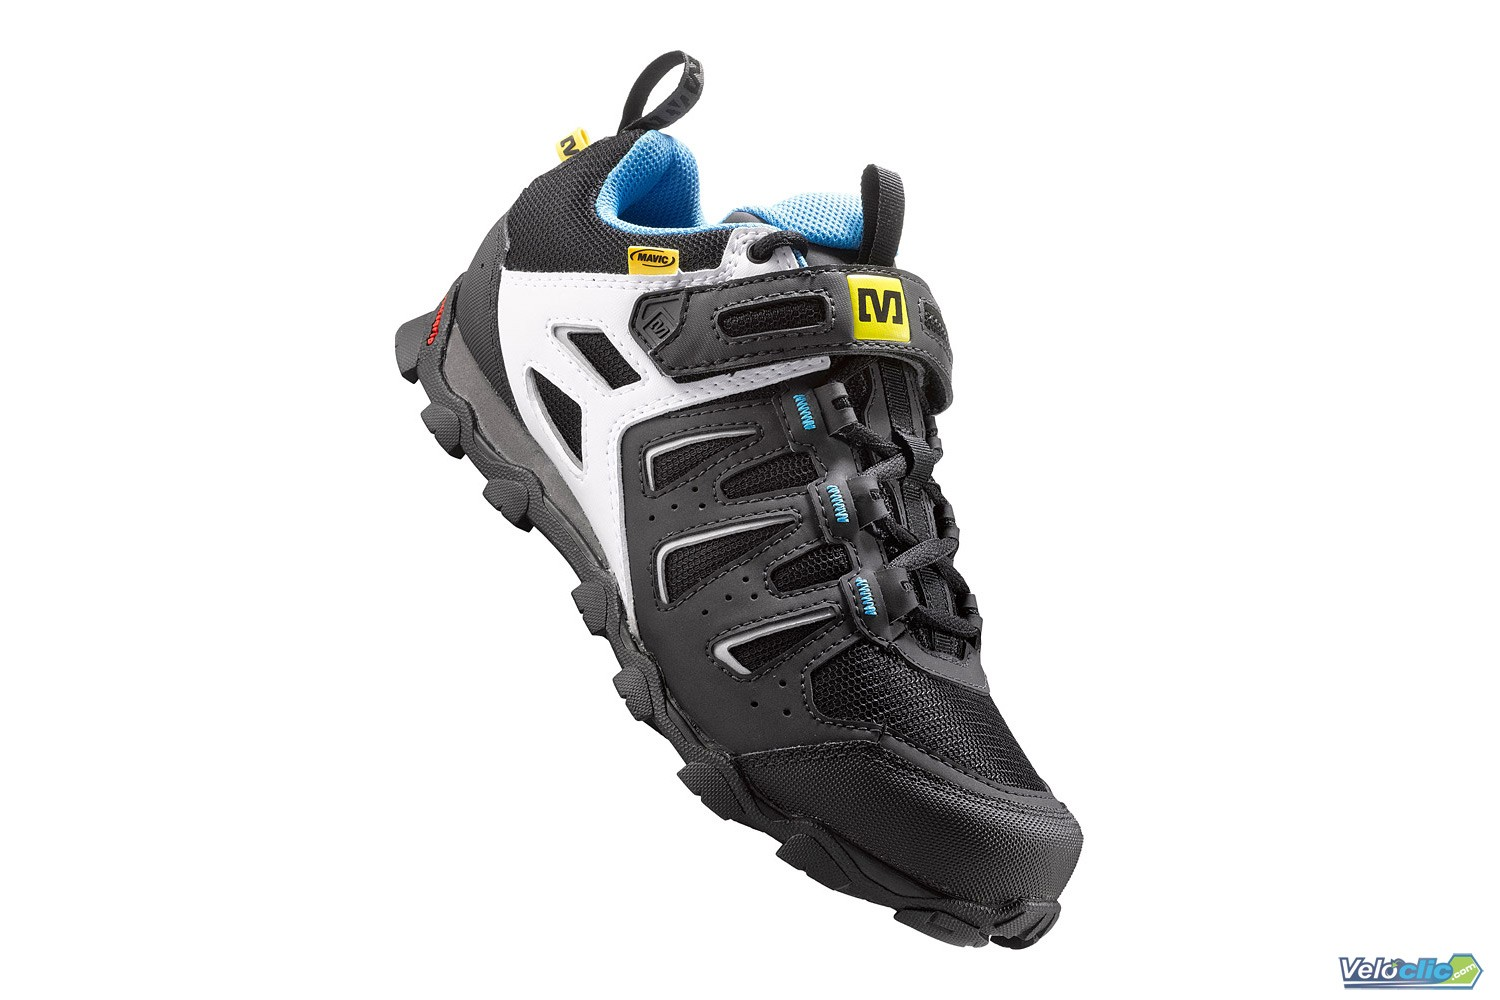 big discount official images cheap chaussure velo pied fin,chaussure de velo adidas,chaussure ...